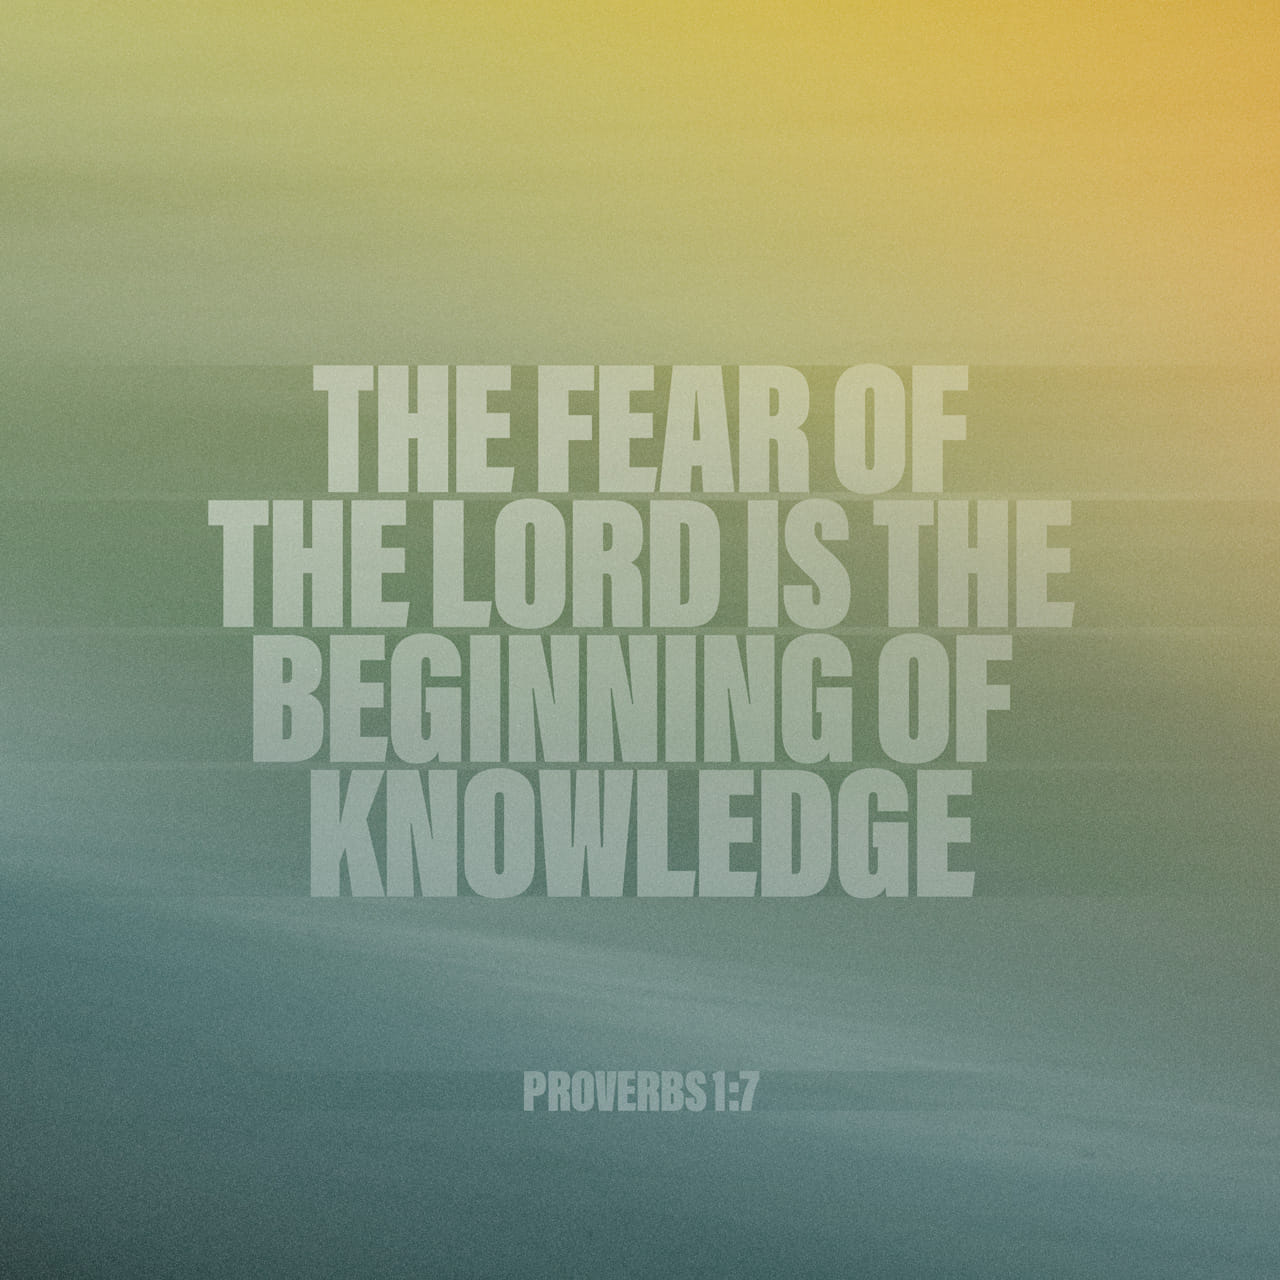 Proverbs 1:7 The fear of Jehovah is the beginning of knowledge; But the foolish despise wisdom and instruction. | American Standard Version (ASV)